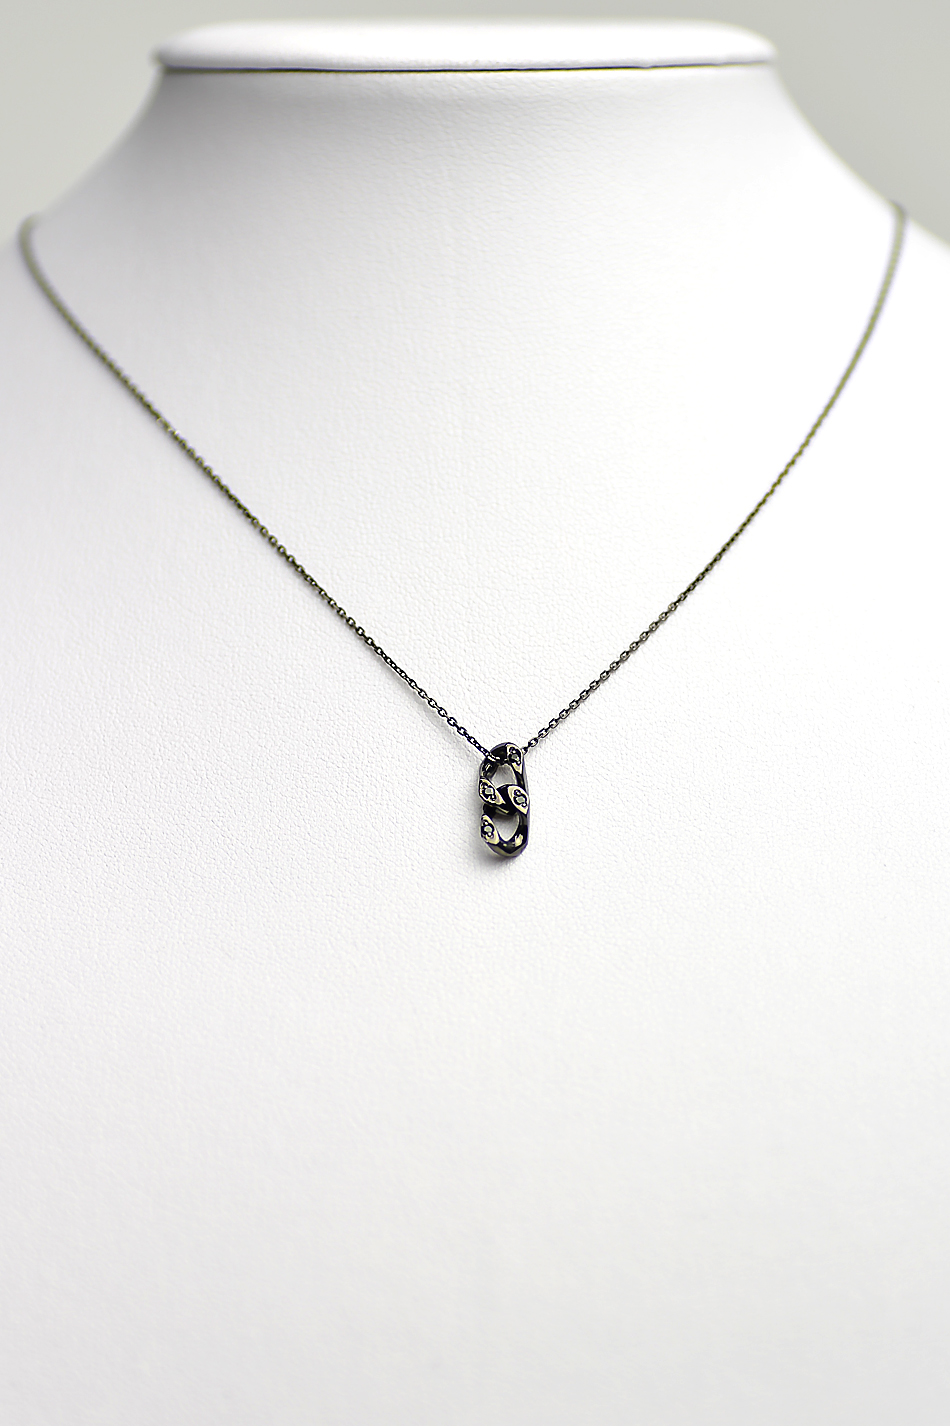 Chain Necklace with DIA BLACK